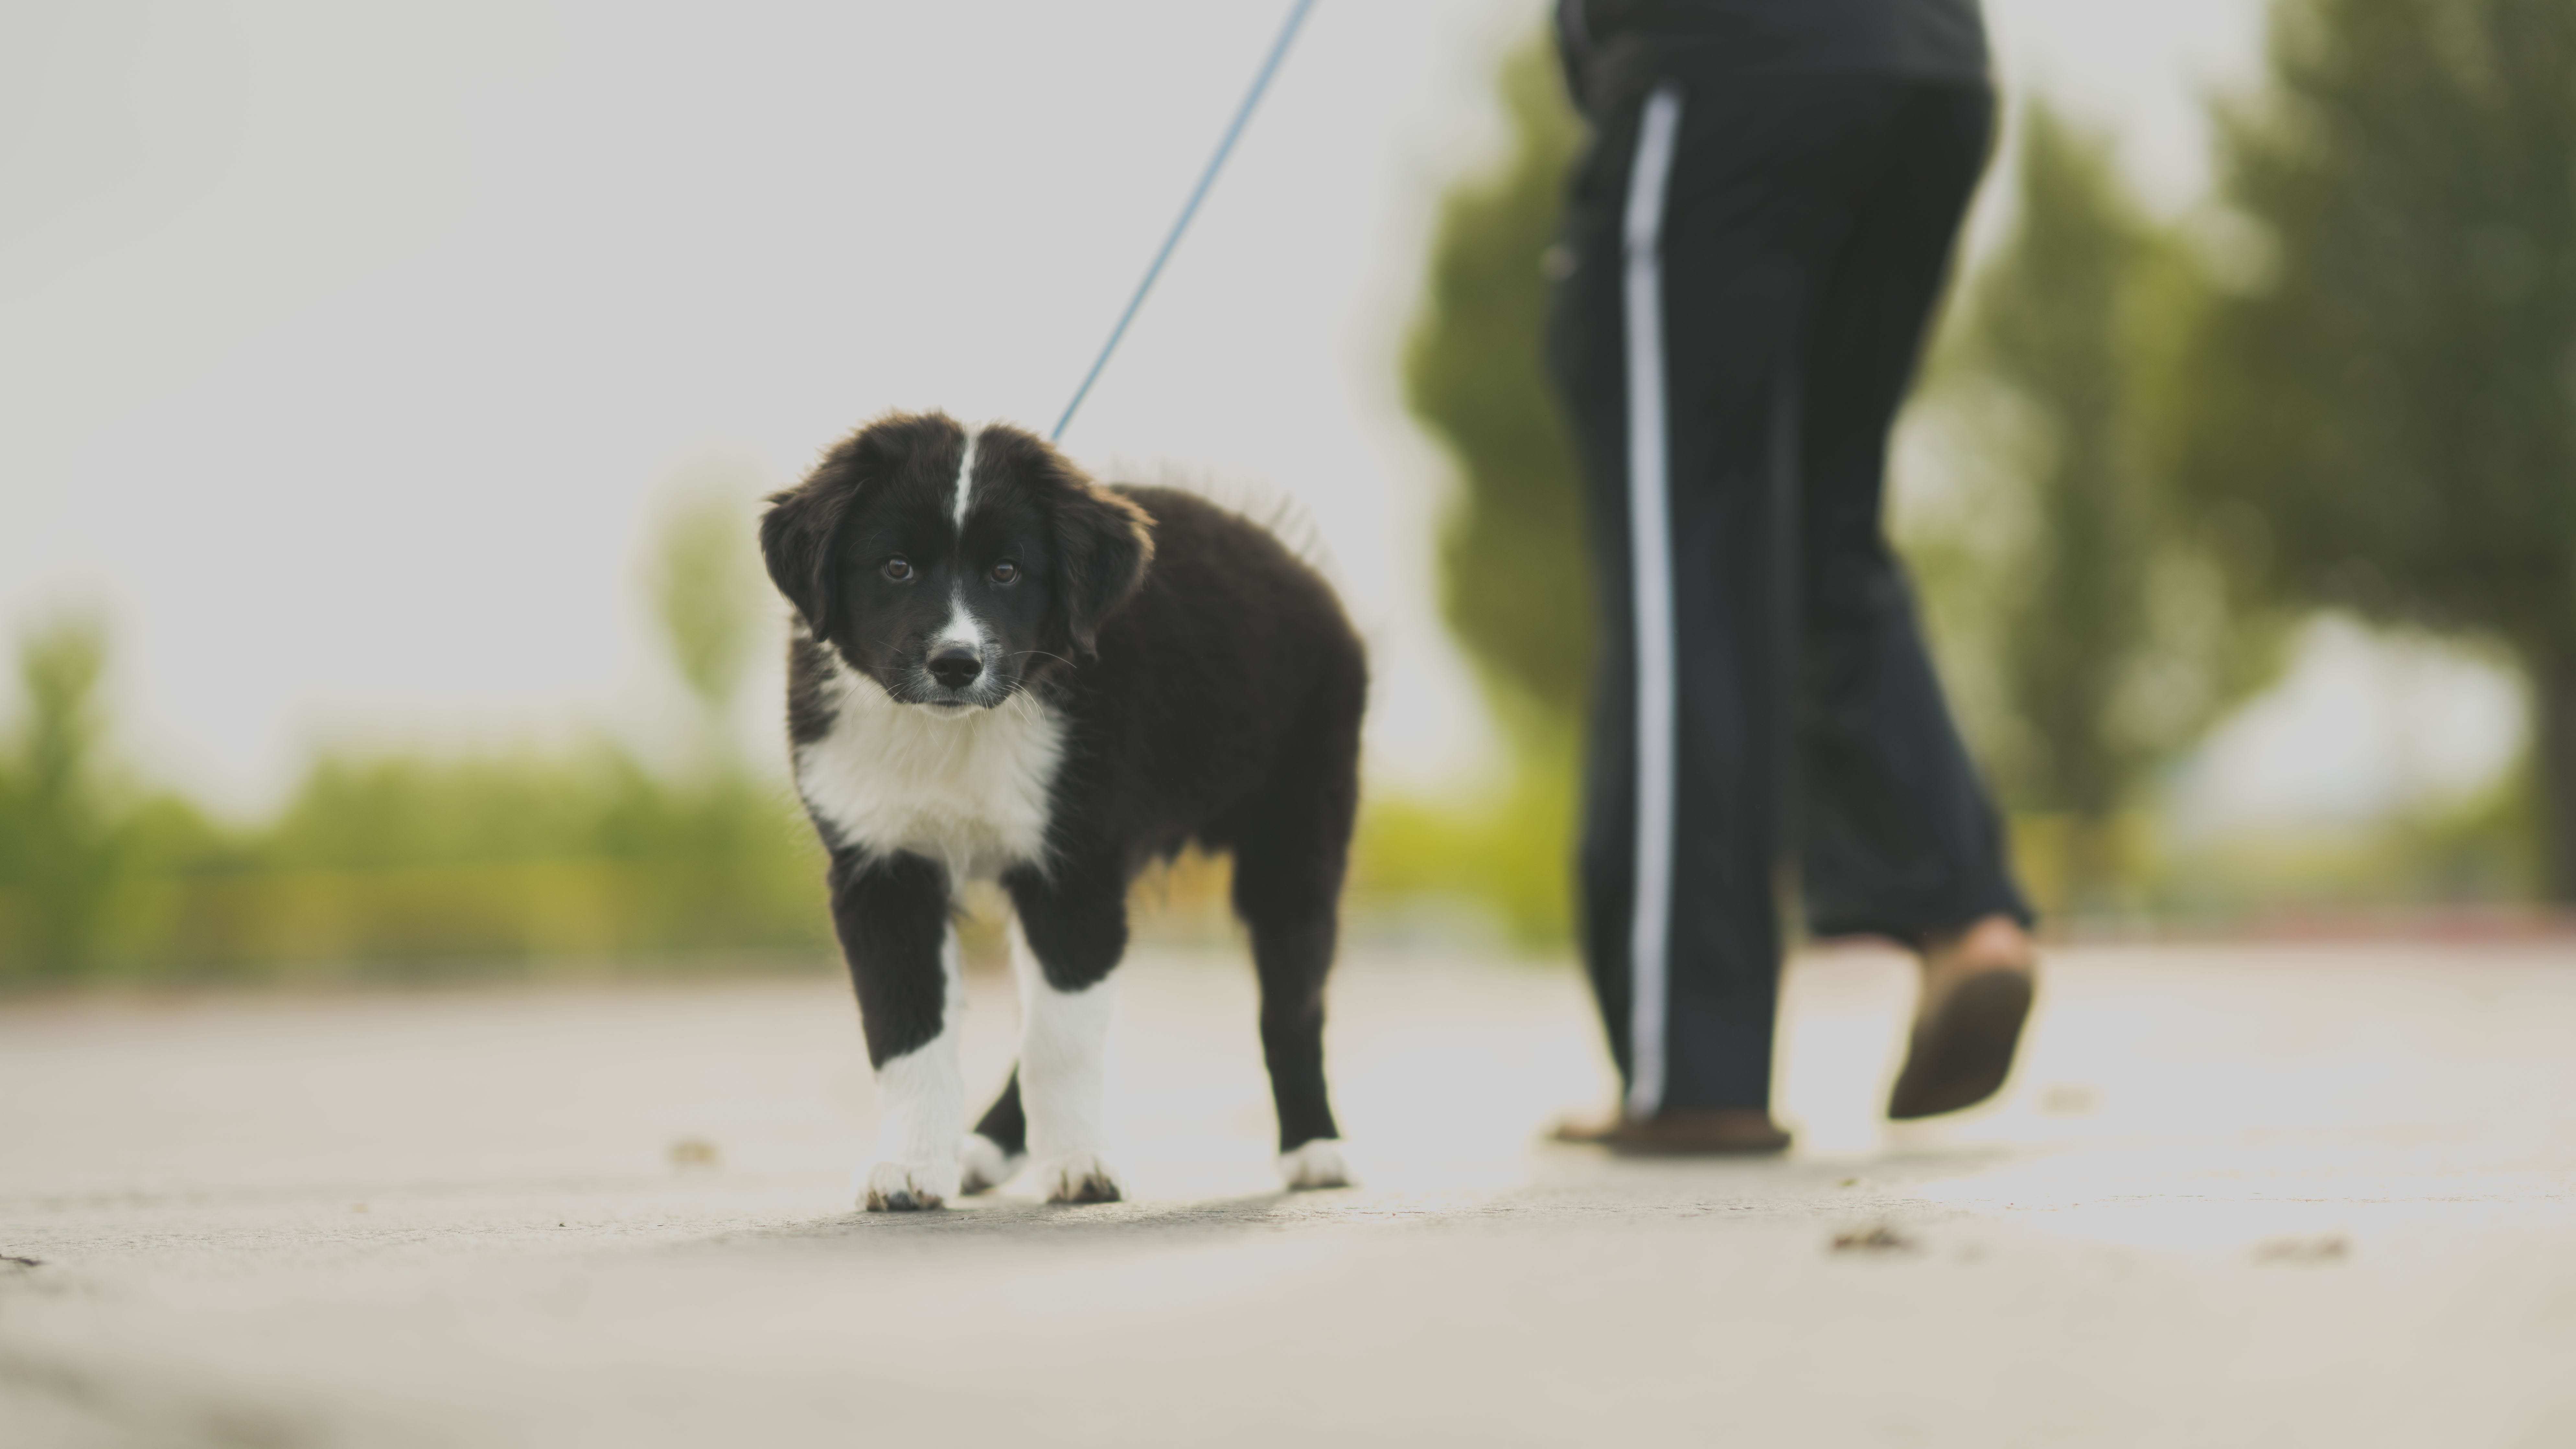 White and Black Border Collie Puppy Walk Beside Person in Track Pants